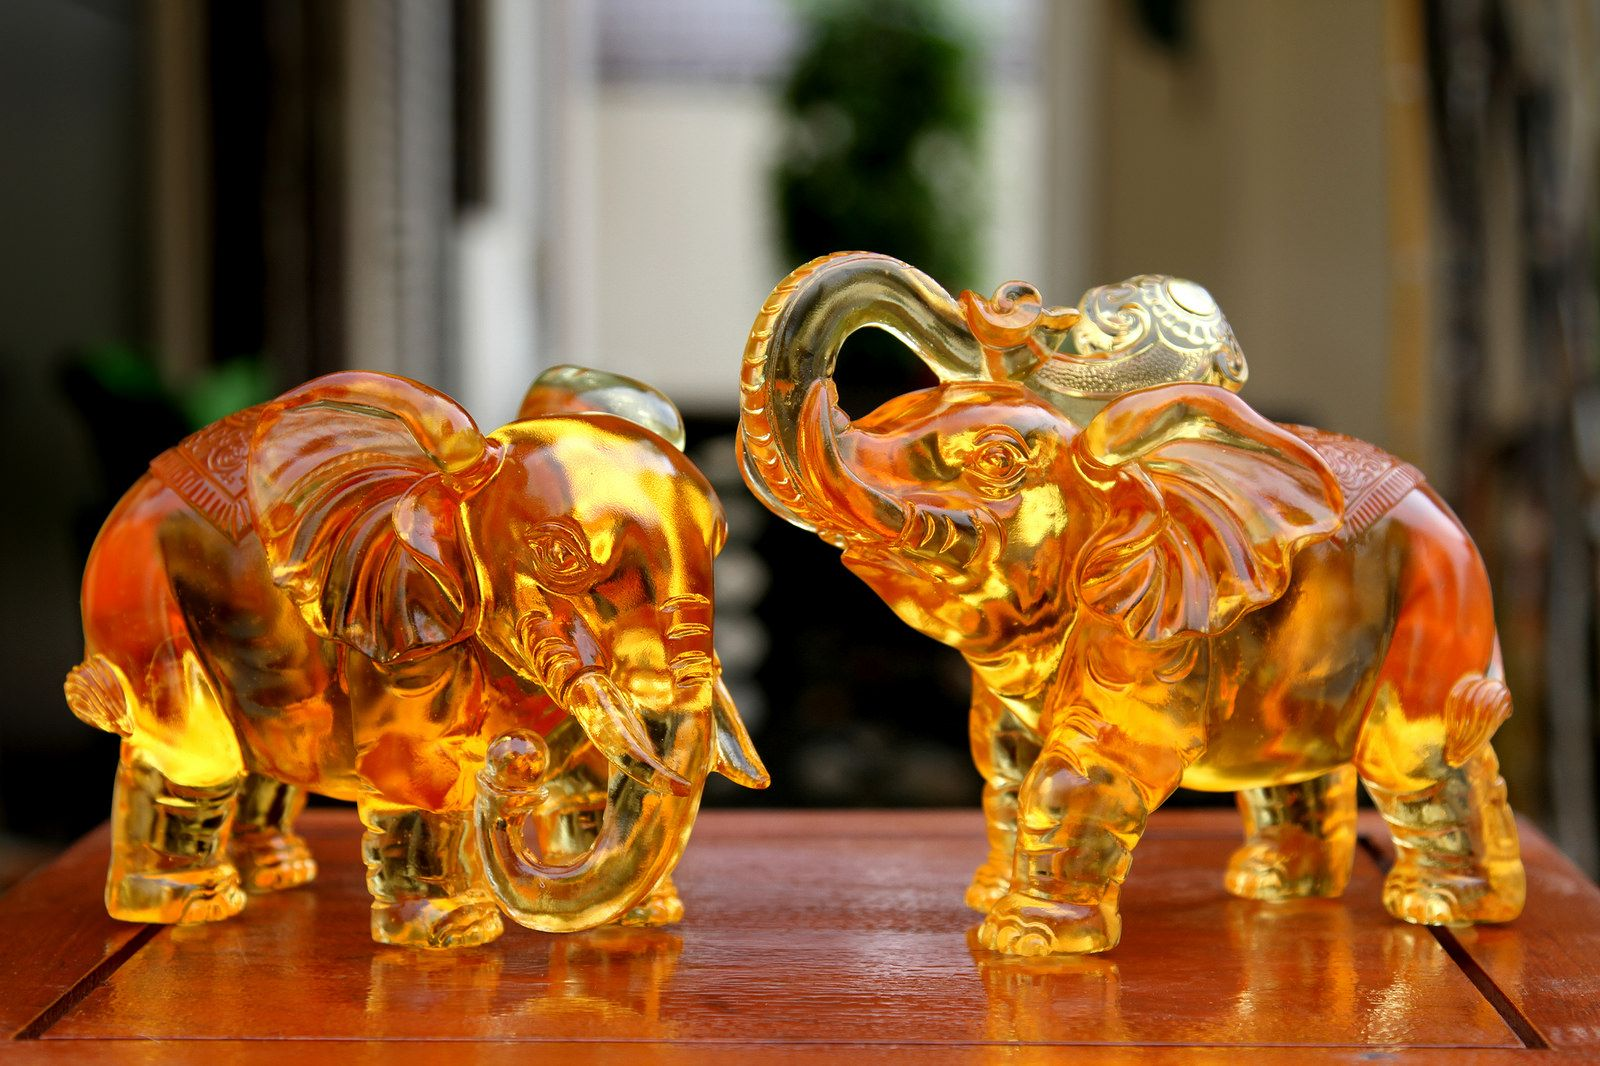 Placing A Statue Of An Elephant, Or A Pair Of Elephants, At The Front Door  Brings Good Luck, Protection And Strength To The Household.